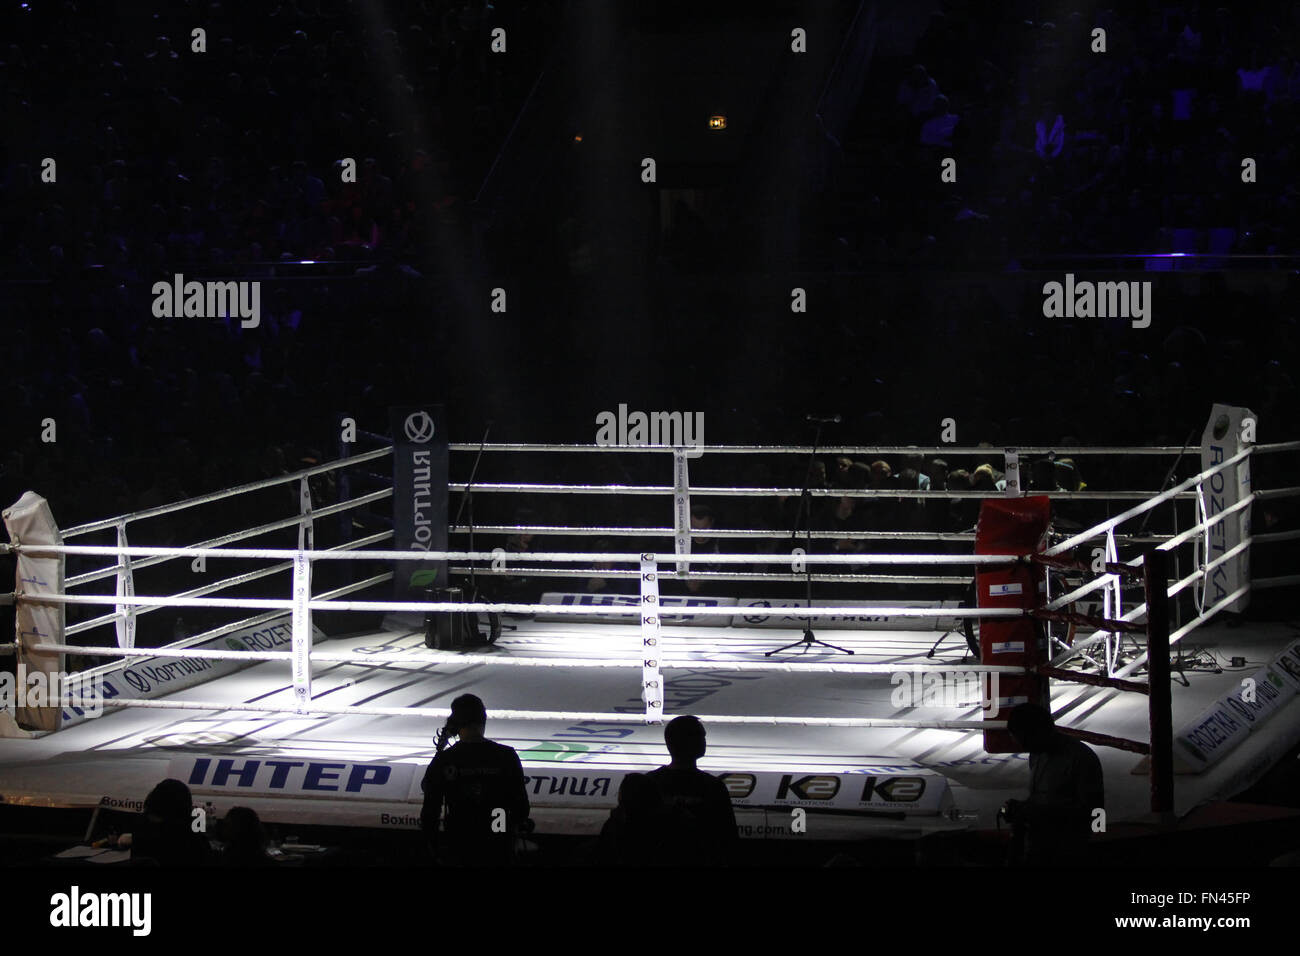 KYIV, UKRAINE - DECEMBER 13, 2014: Close-up boxing ring in Palace of Sports in Kyiv during 'Evening of Boxing' - Stock Image